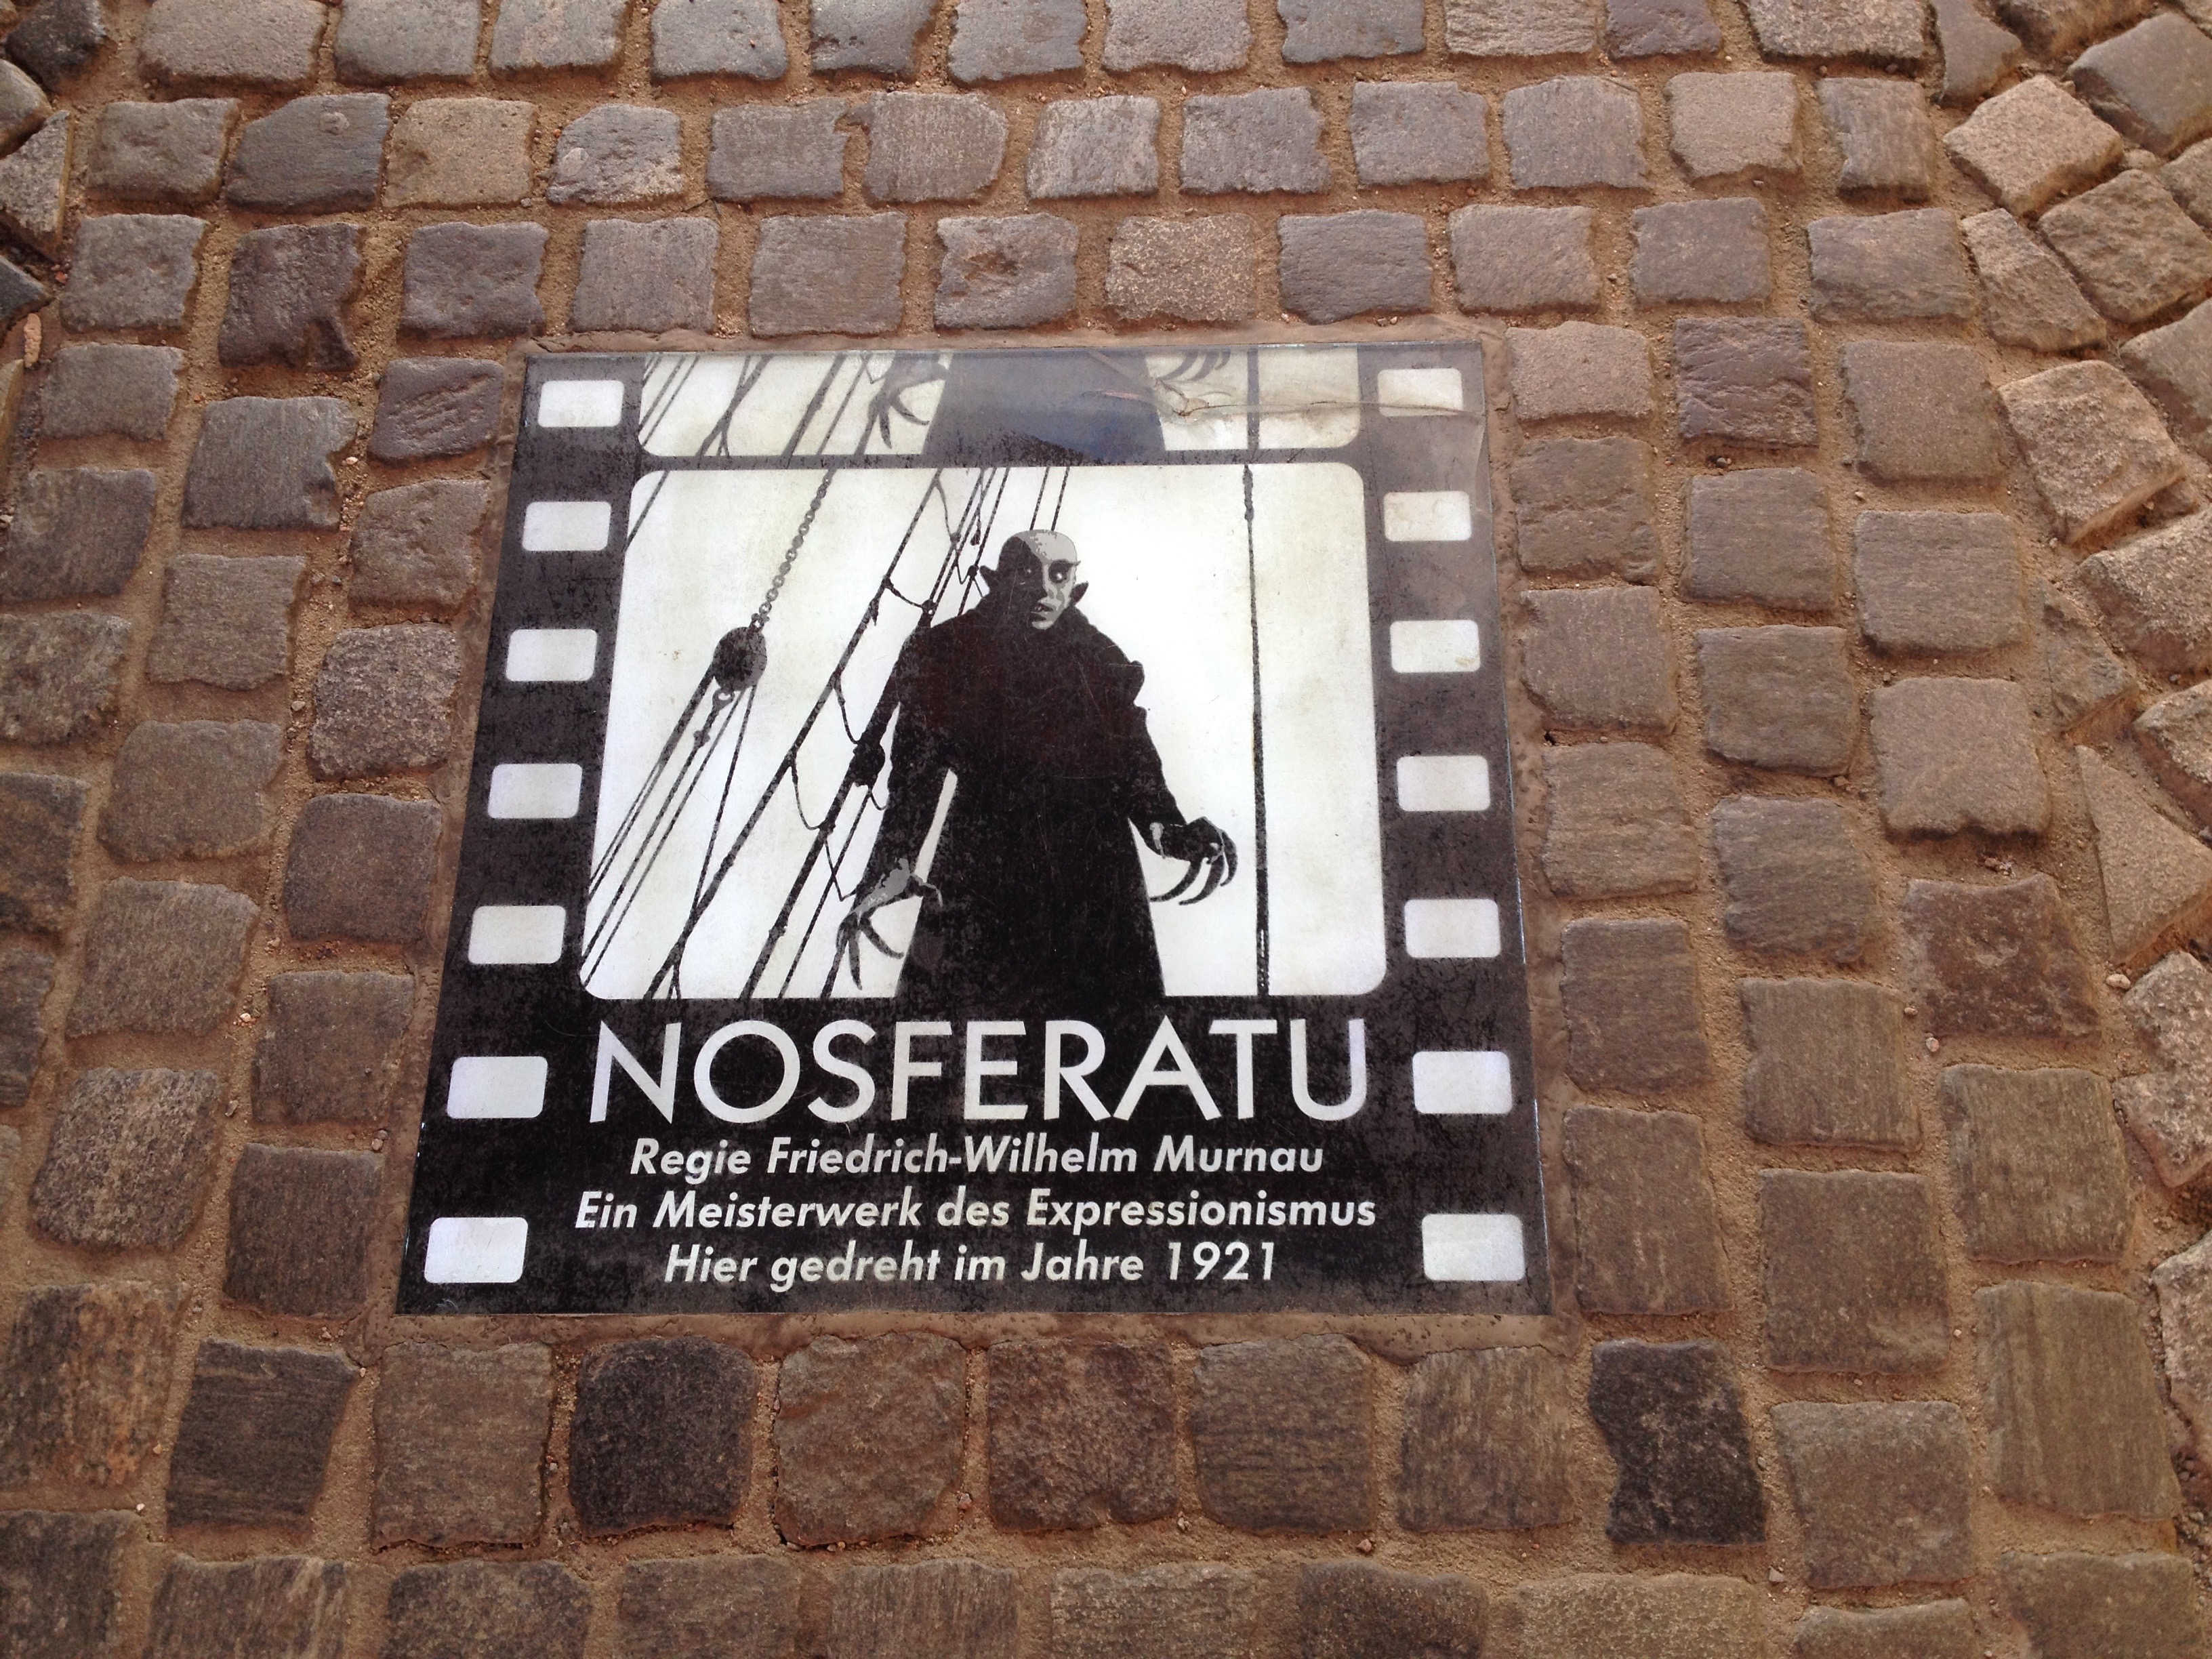 Nosferatu - Gamesforlanguage.com